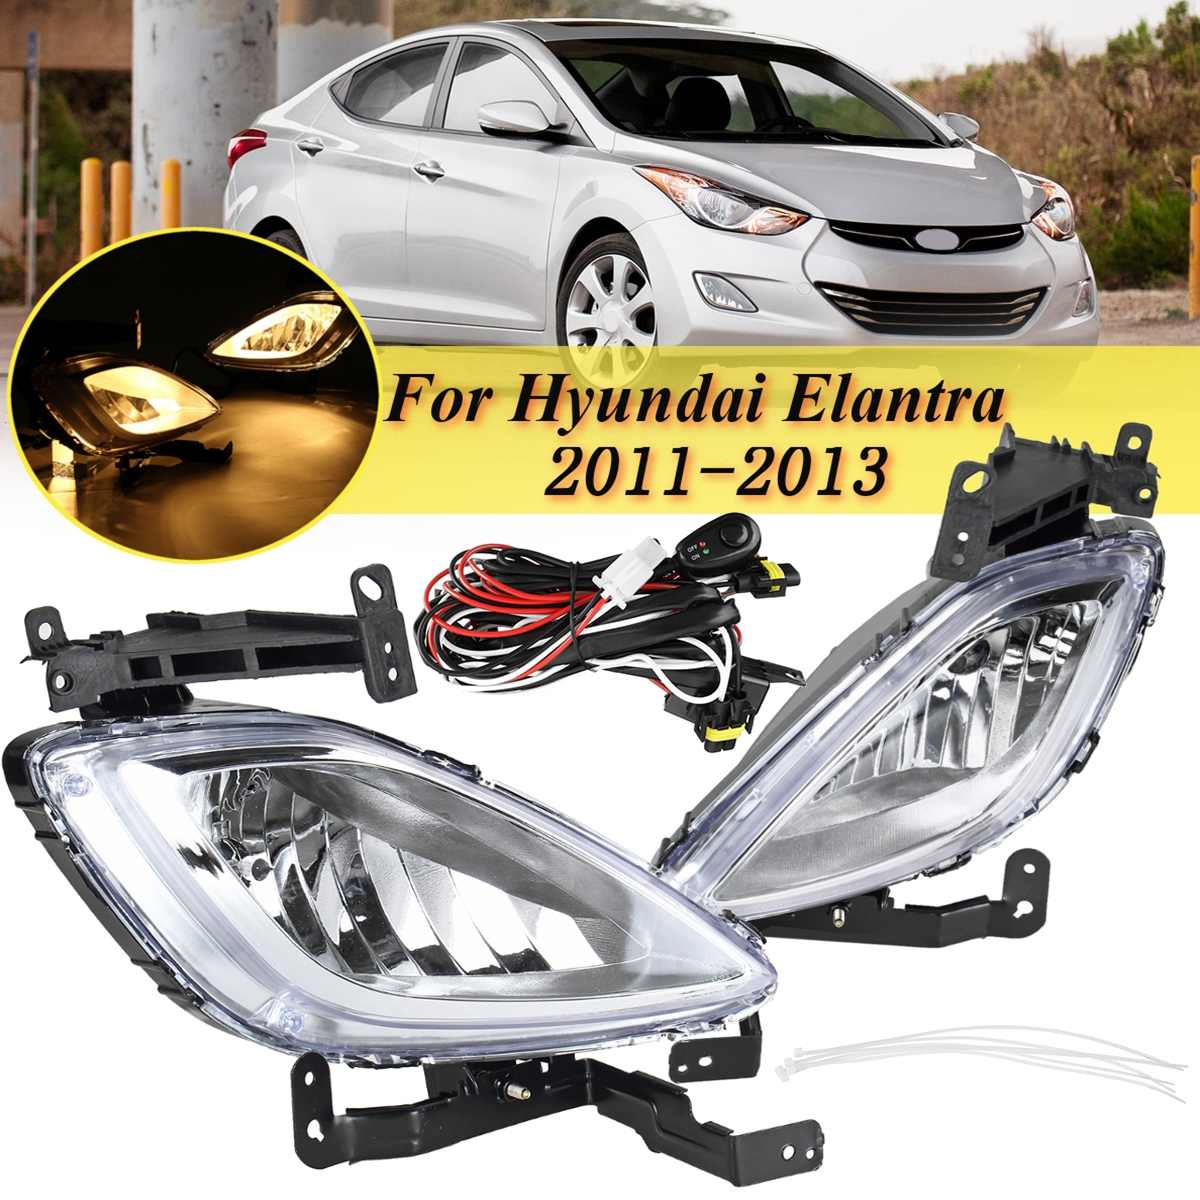 For Hyundai Elantra 2011 2012 2013 Original 1 Pair Car Front Fog Light Lamp With Wire Bulb Driving Drl Light Replacement